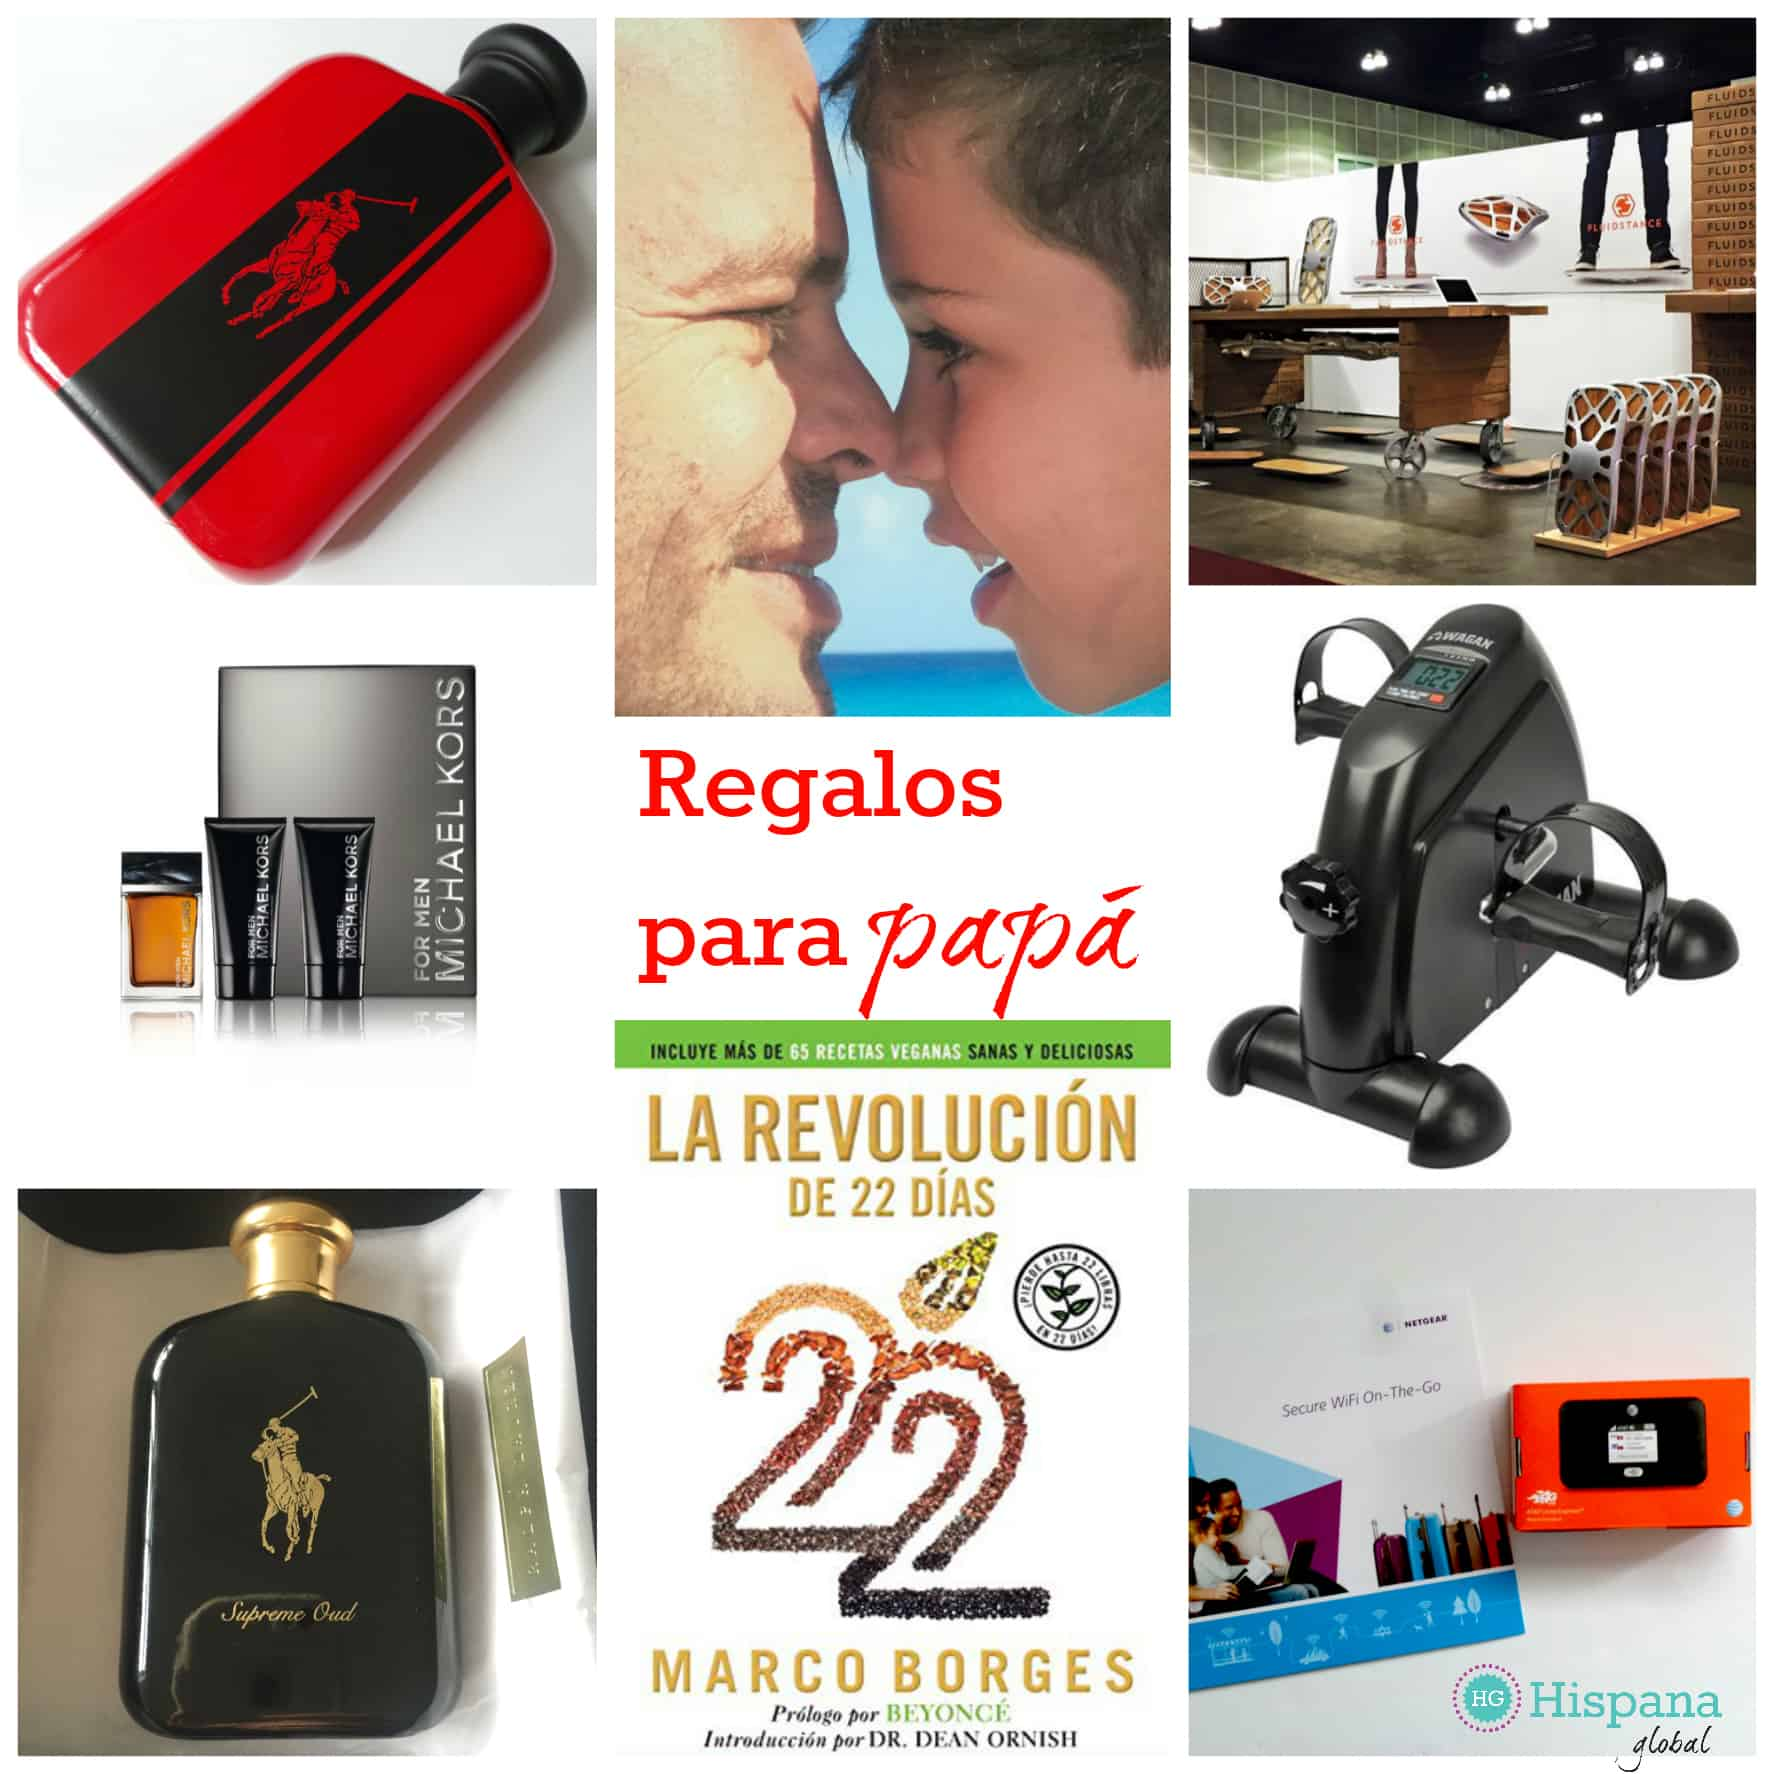 5 ideas de regalos para el d a del padre hispana global - Ideas de regalos para padres ...